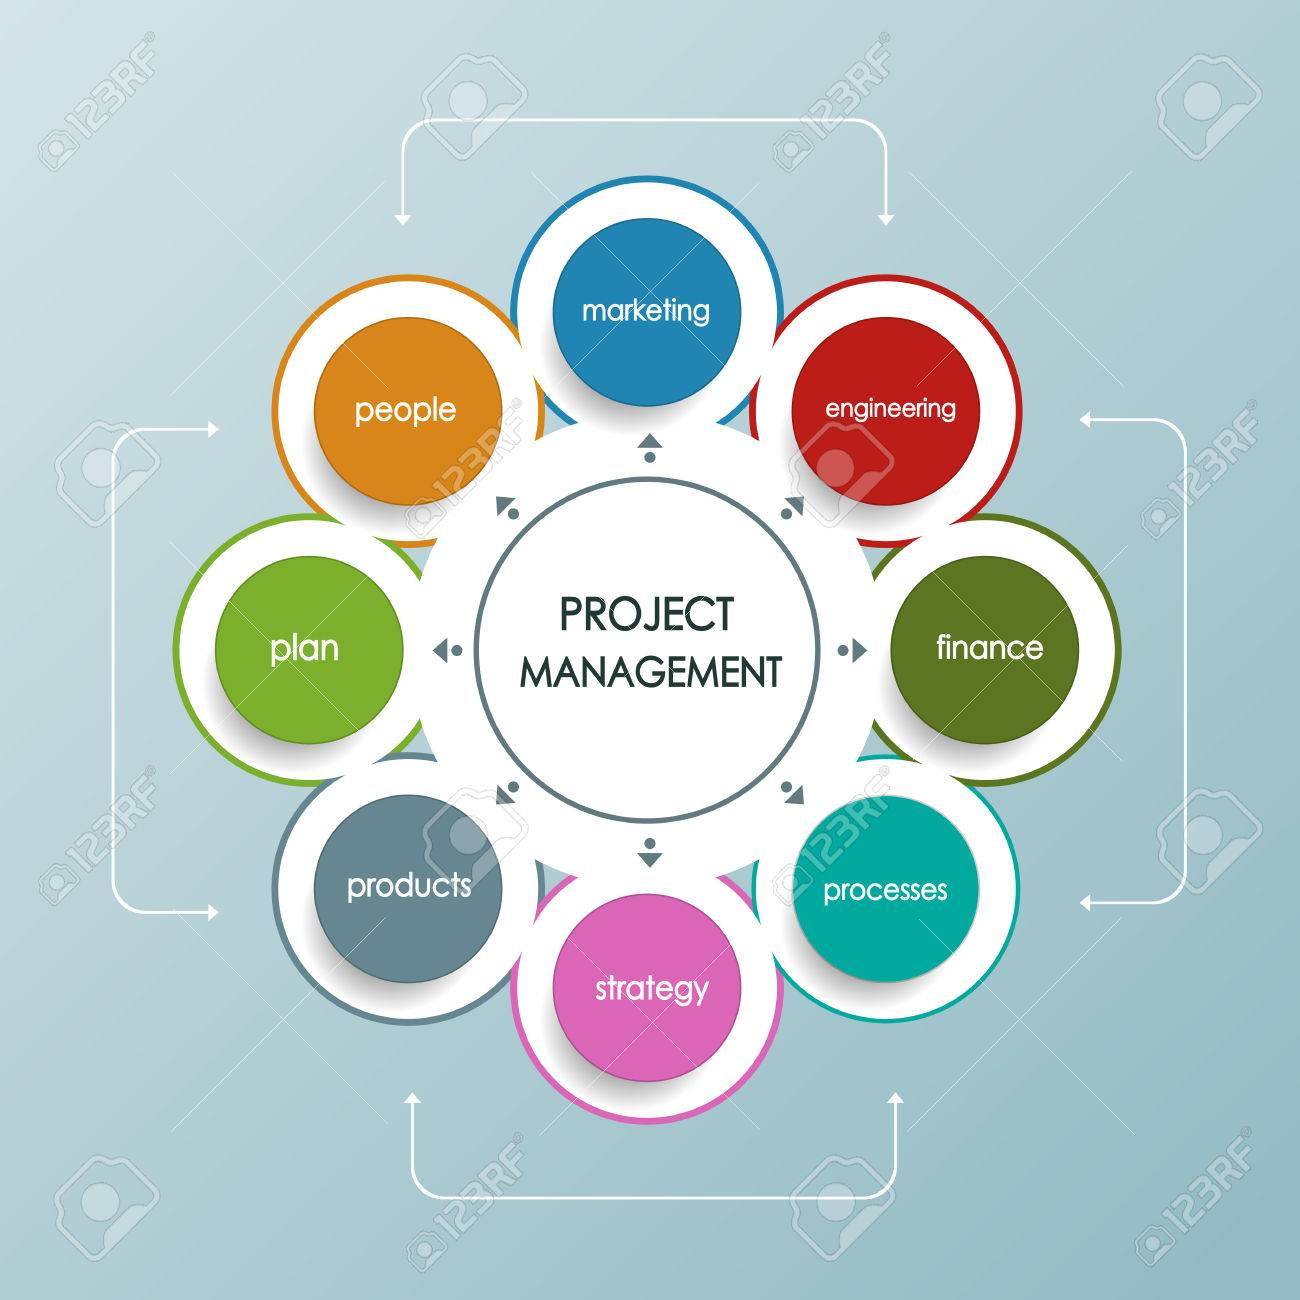 project management business plan with circle shape operations